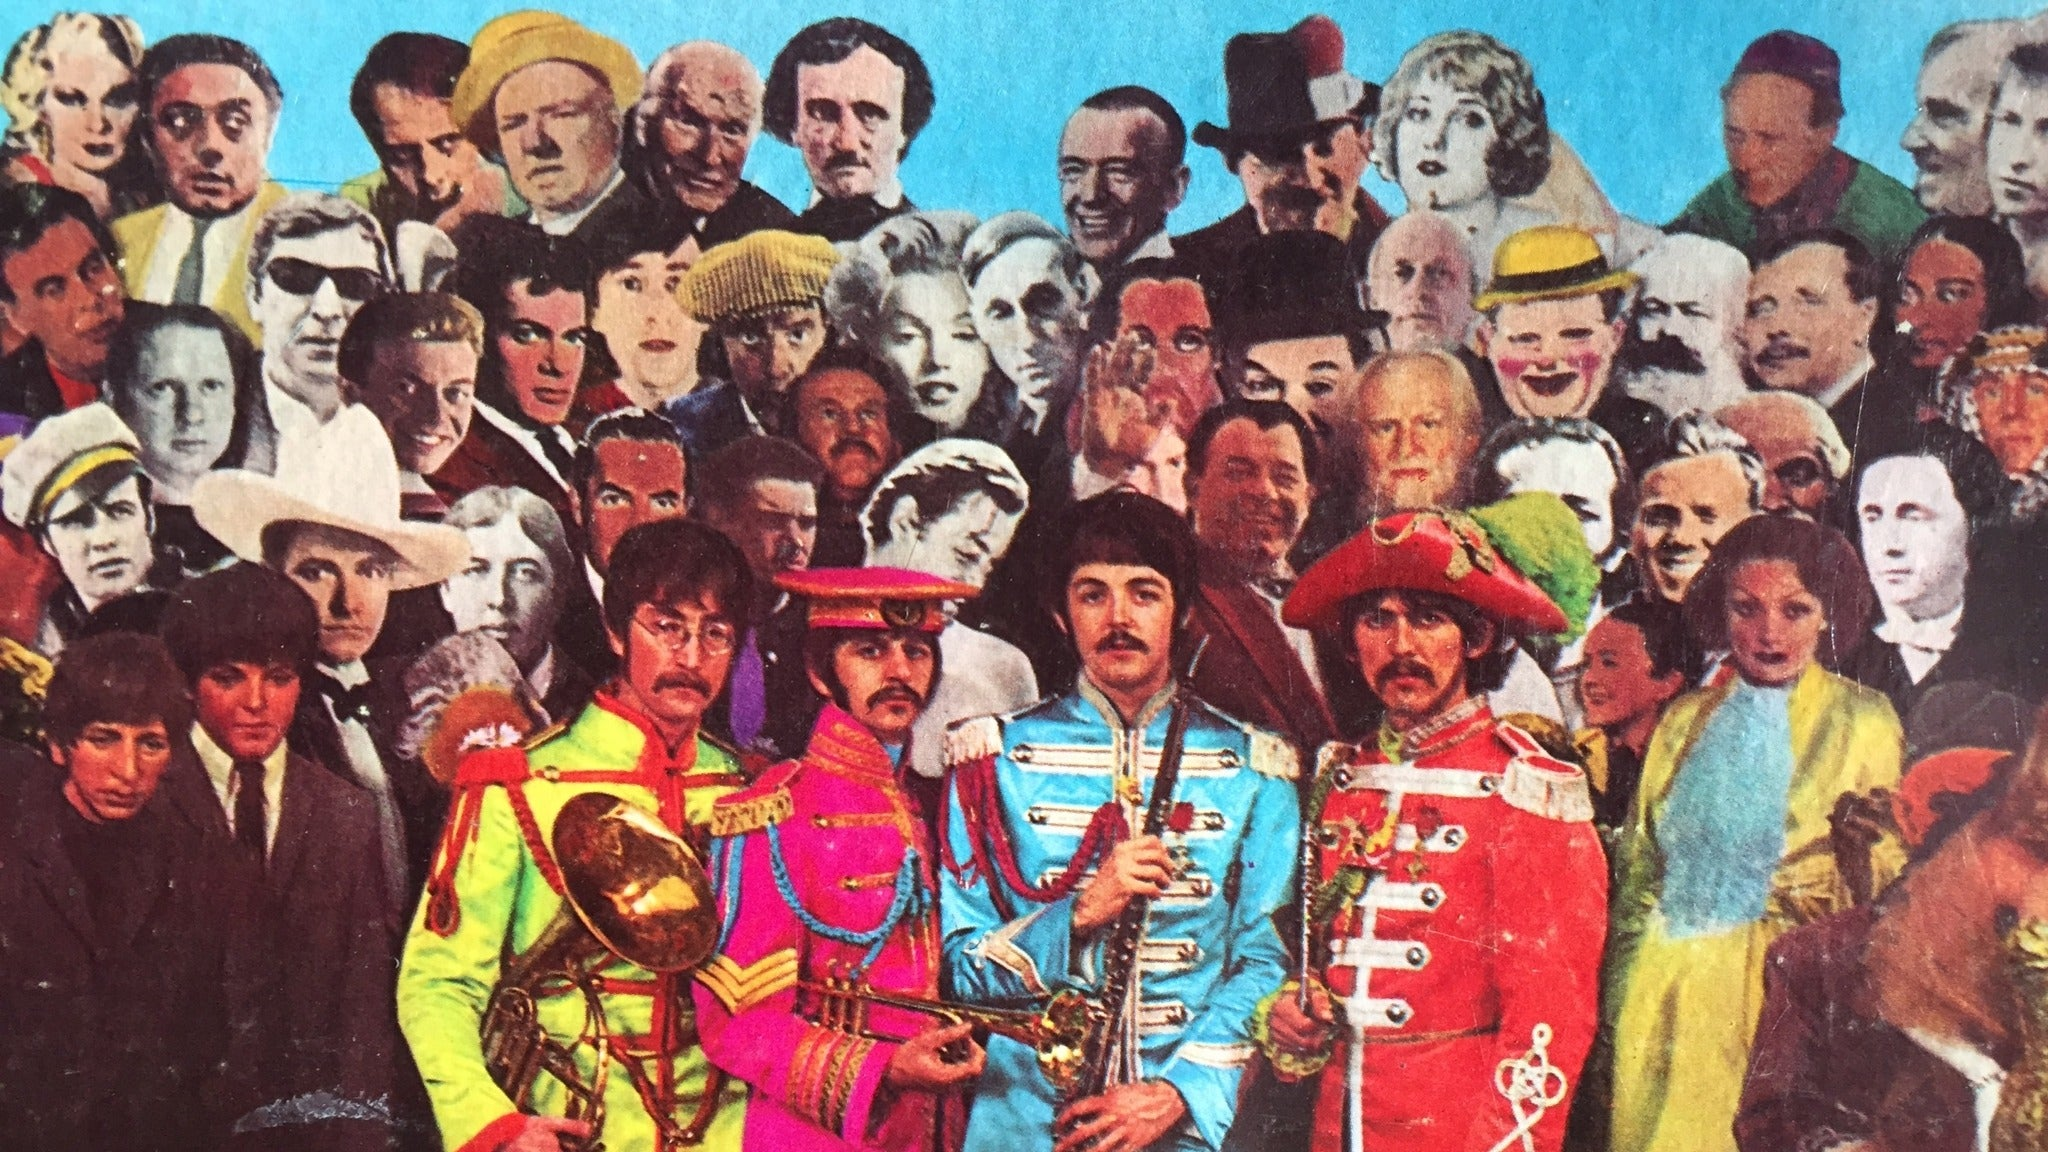 Sgt Pepper 50th Anniversary Show with Abbey Road LIVE!